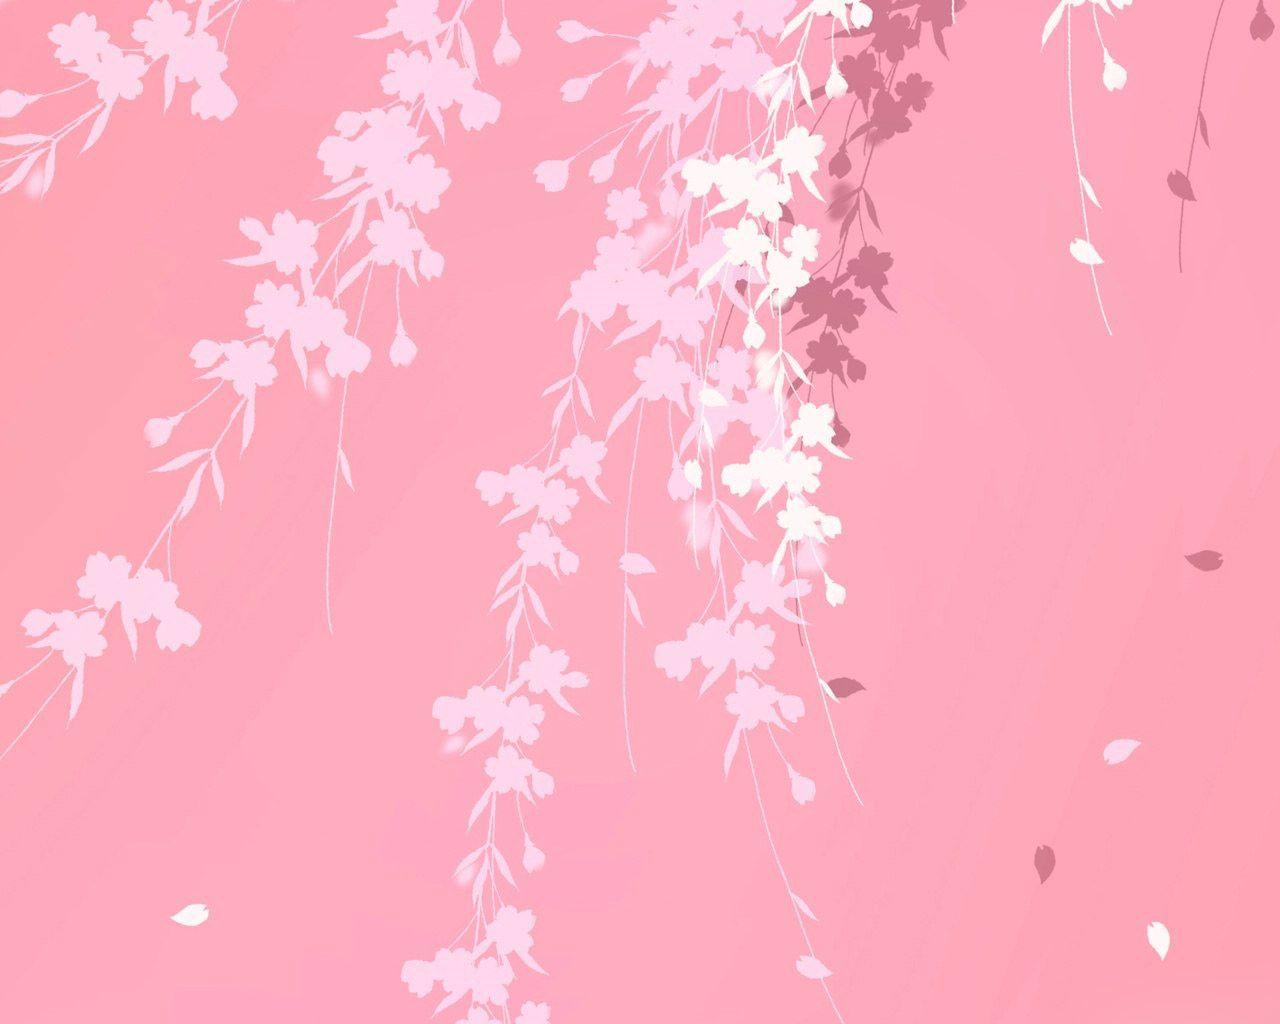 pink wallpapers for computer wallpaper cave